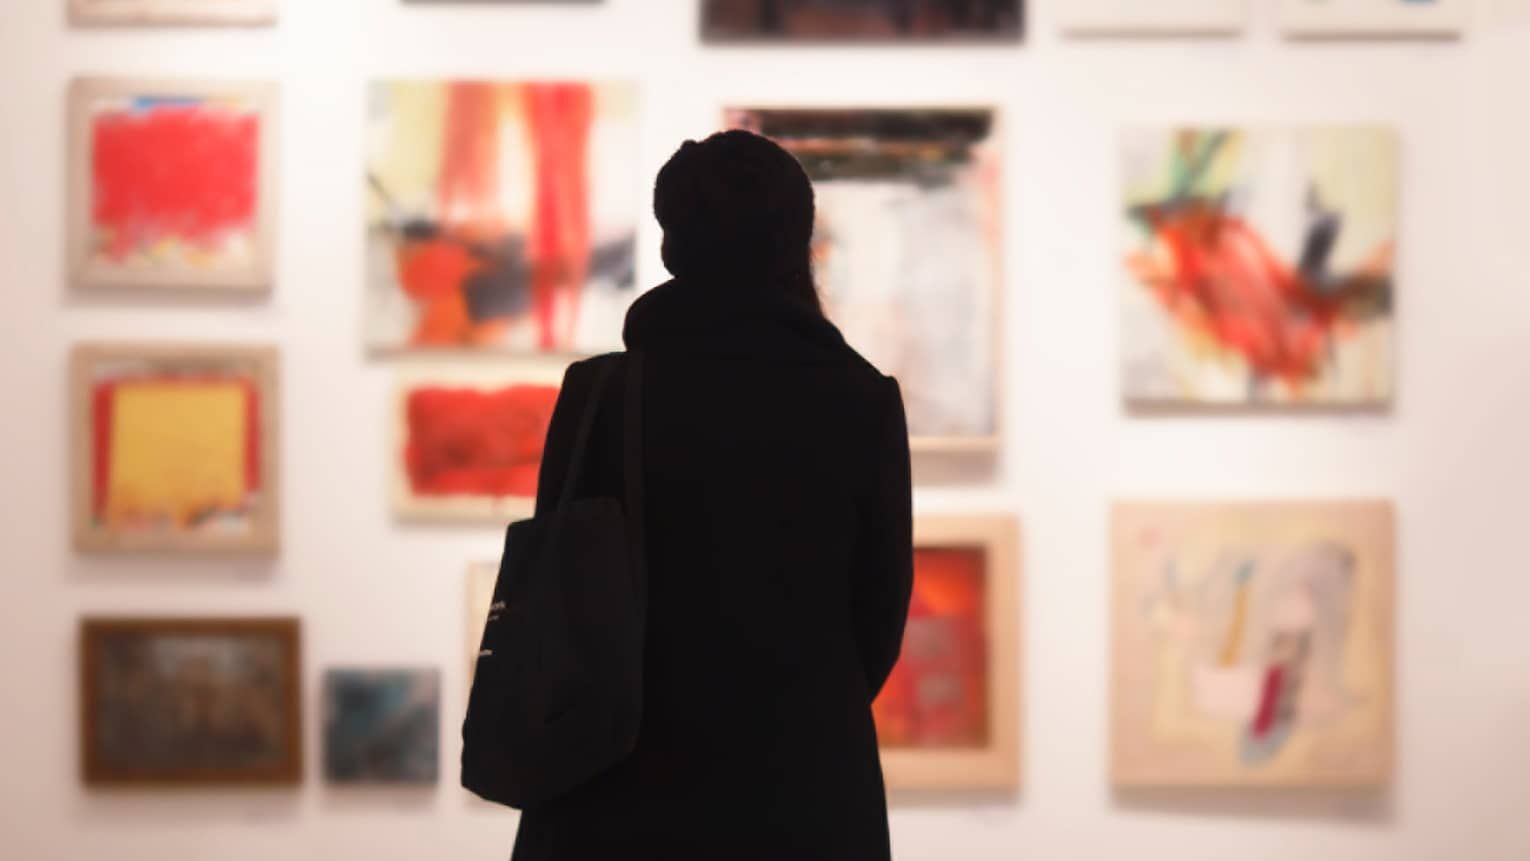 Silhouette of back of woman with hat bag looking at gallery wall with colourful art